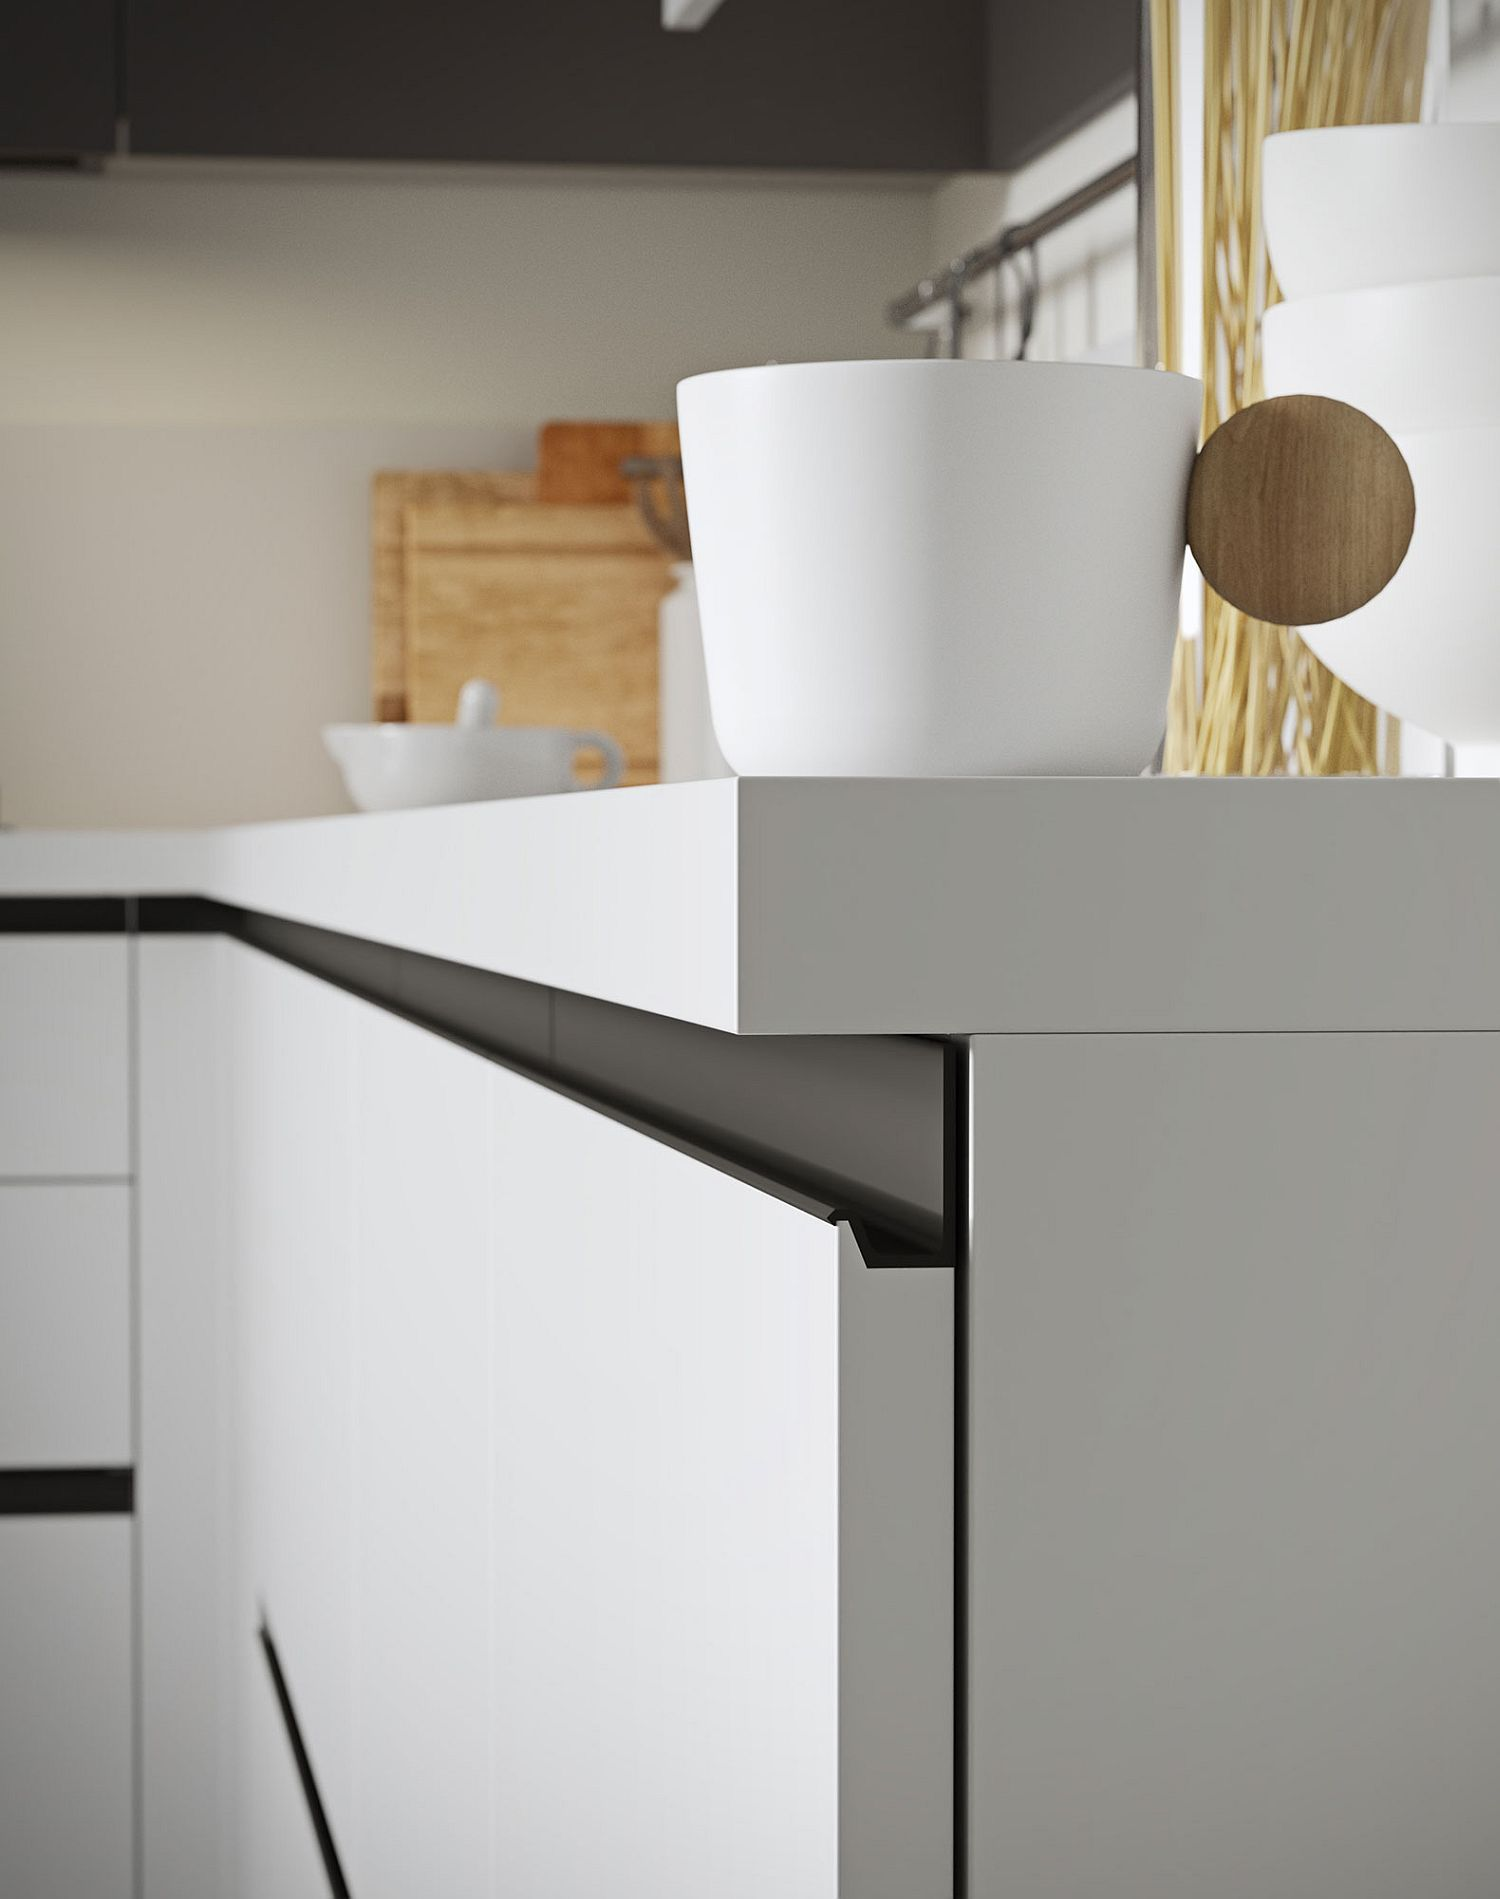 Handle Less Doors Design Adds To The Minimal Charm Of Joy From Snaidero Kitchen Furniture Design Interior Design Kitchen Handleless Kitchen Cabinets